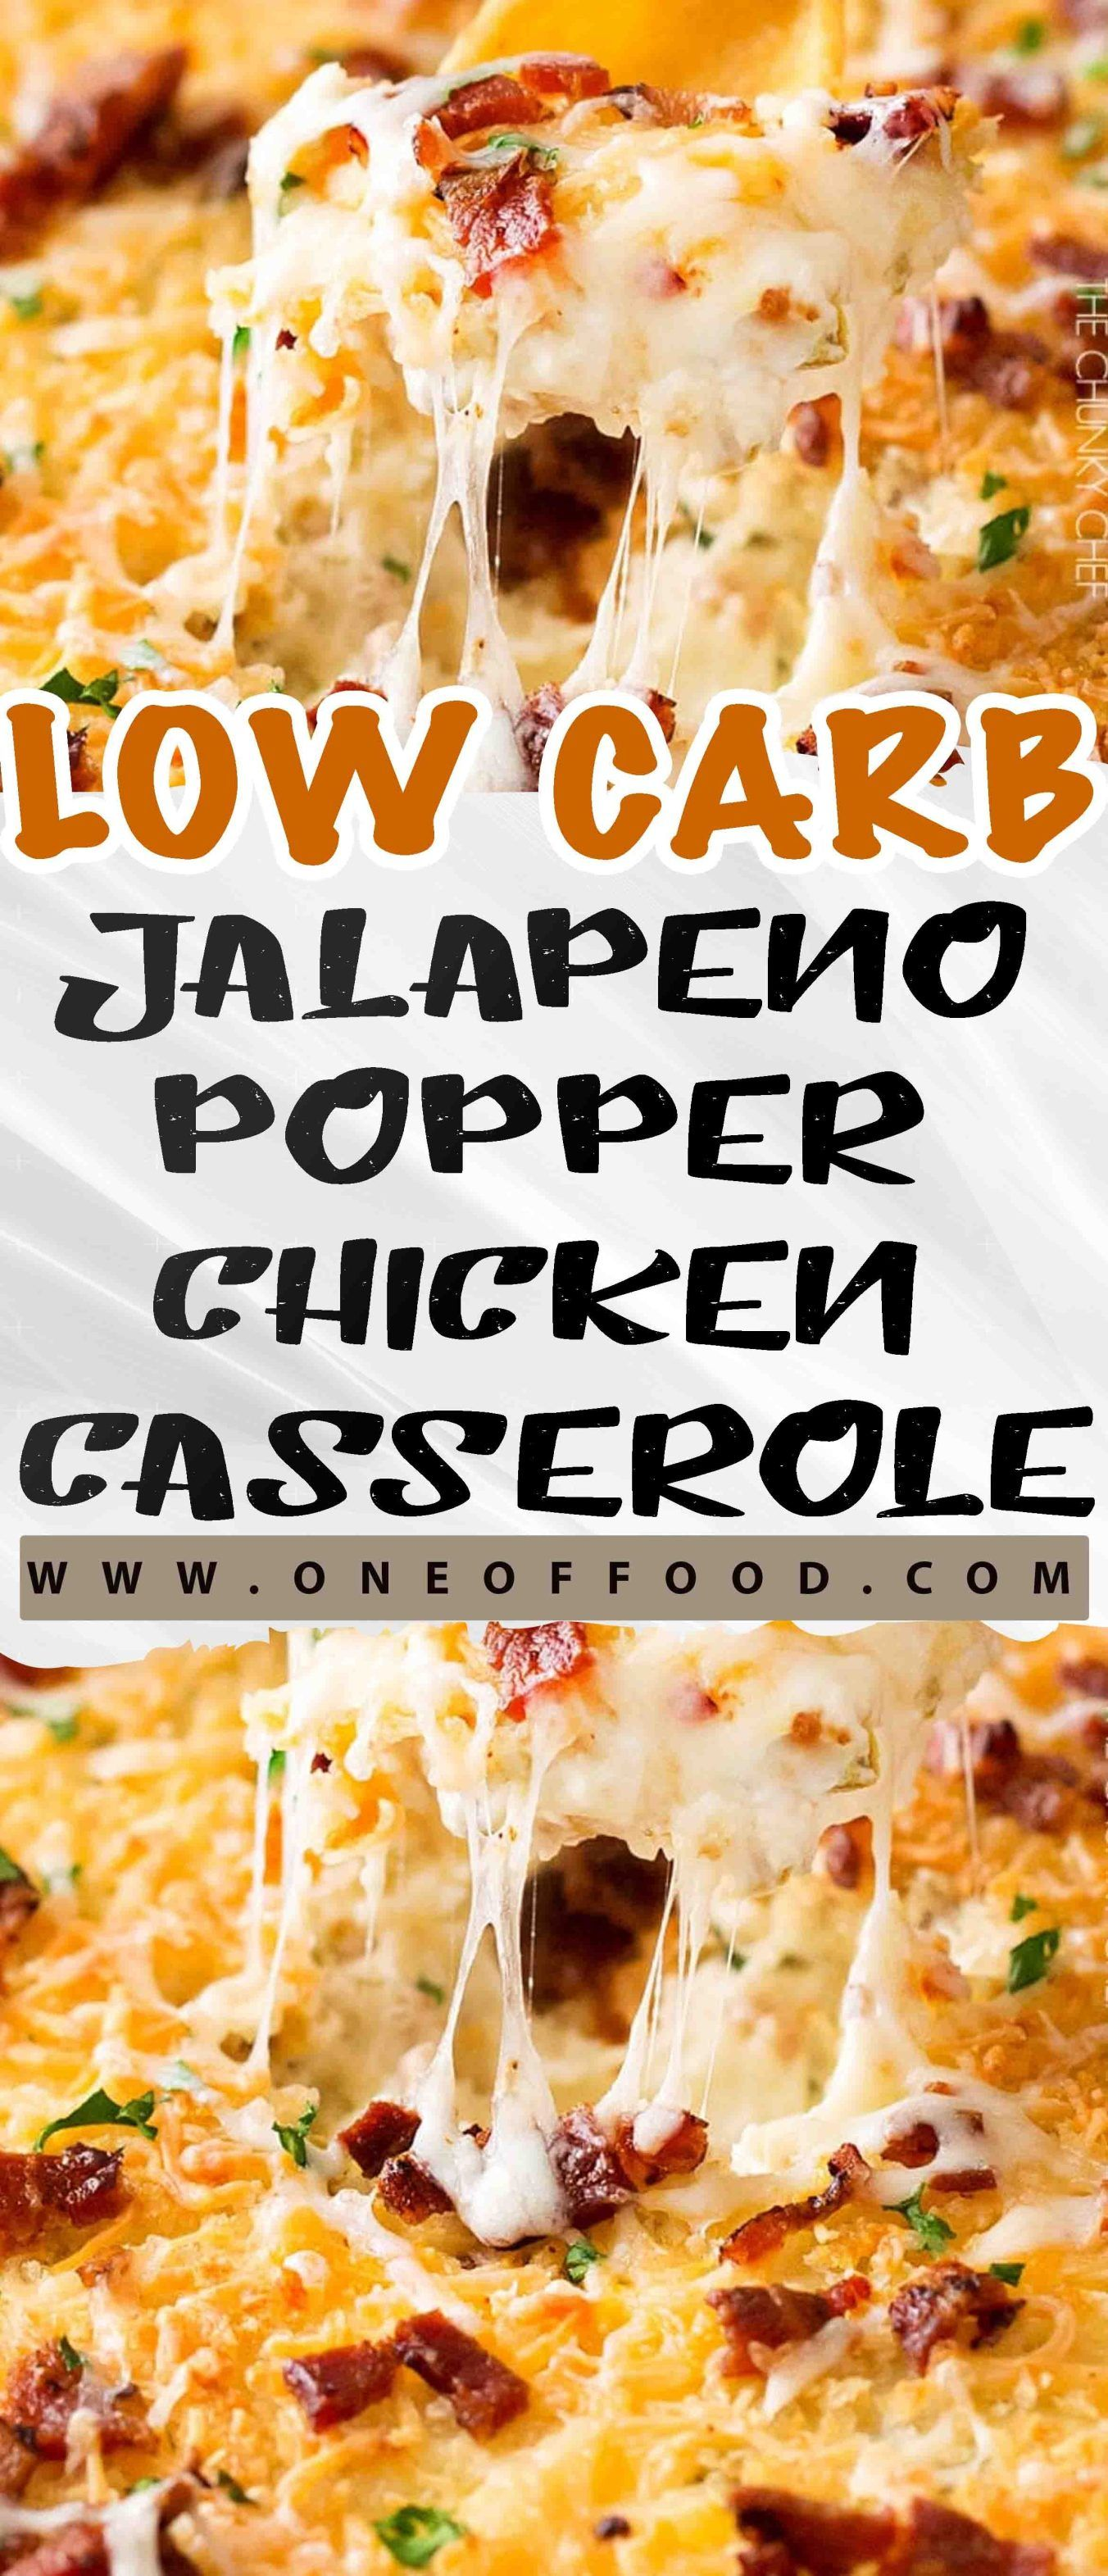 Chicken in a creamy cheesy sauce with pieces of jalapeno and loads of bacon. This Jalapeno Popper Chicken Casserole is one of the best casseroles ever… #creamychickencasserole